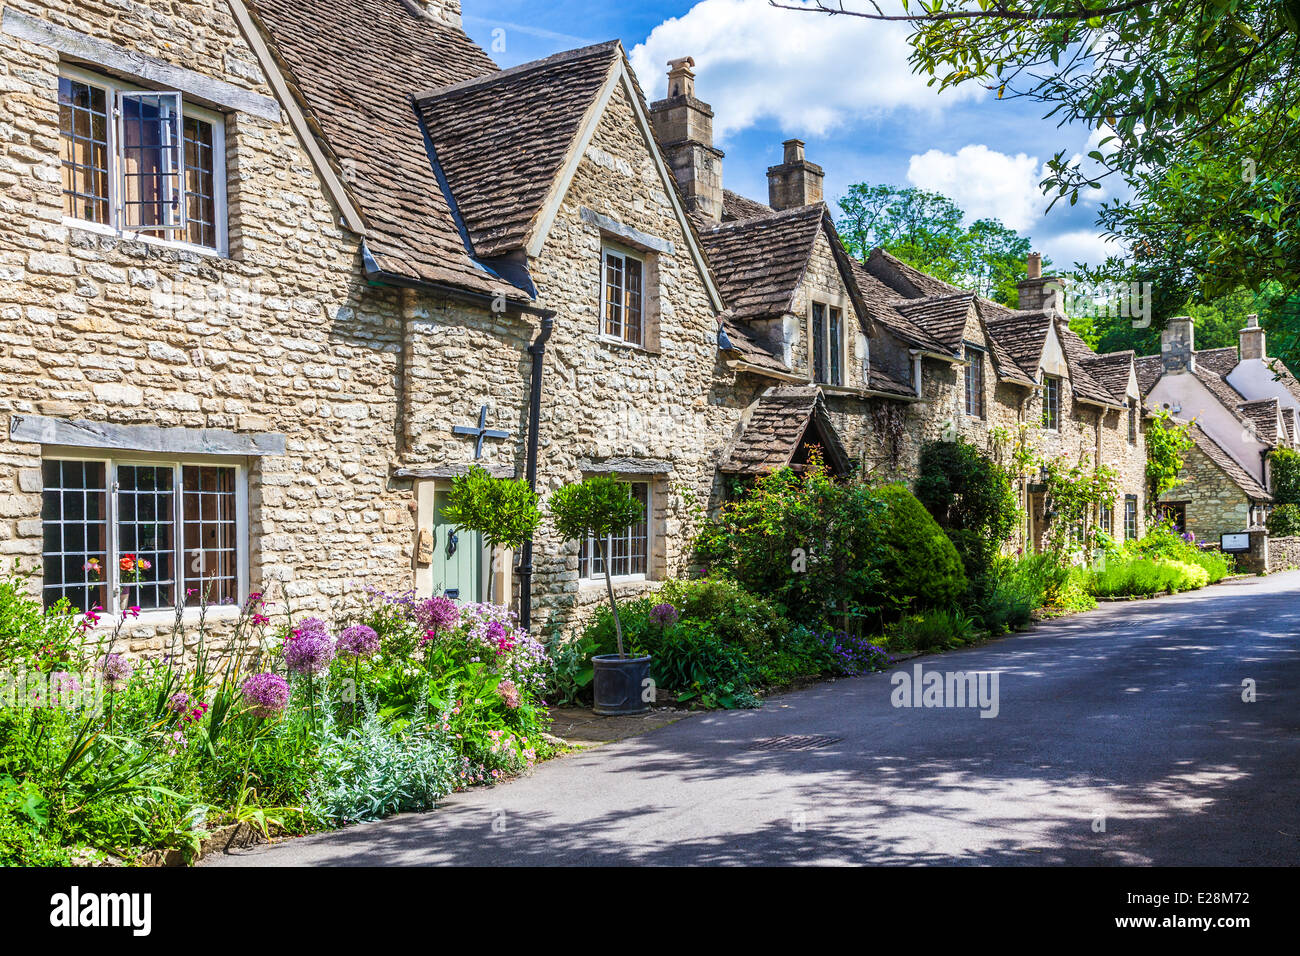 A lane of pretty terraced stone cottages in the Cotswold village of Castle Combe in Wiltshire. Stock Photo